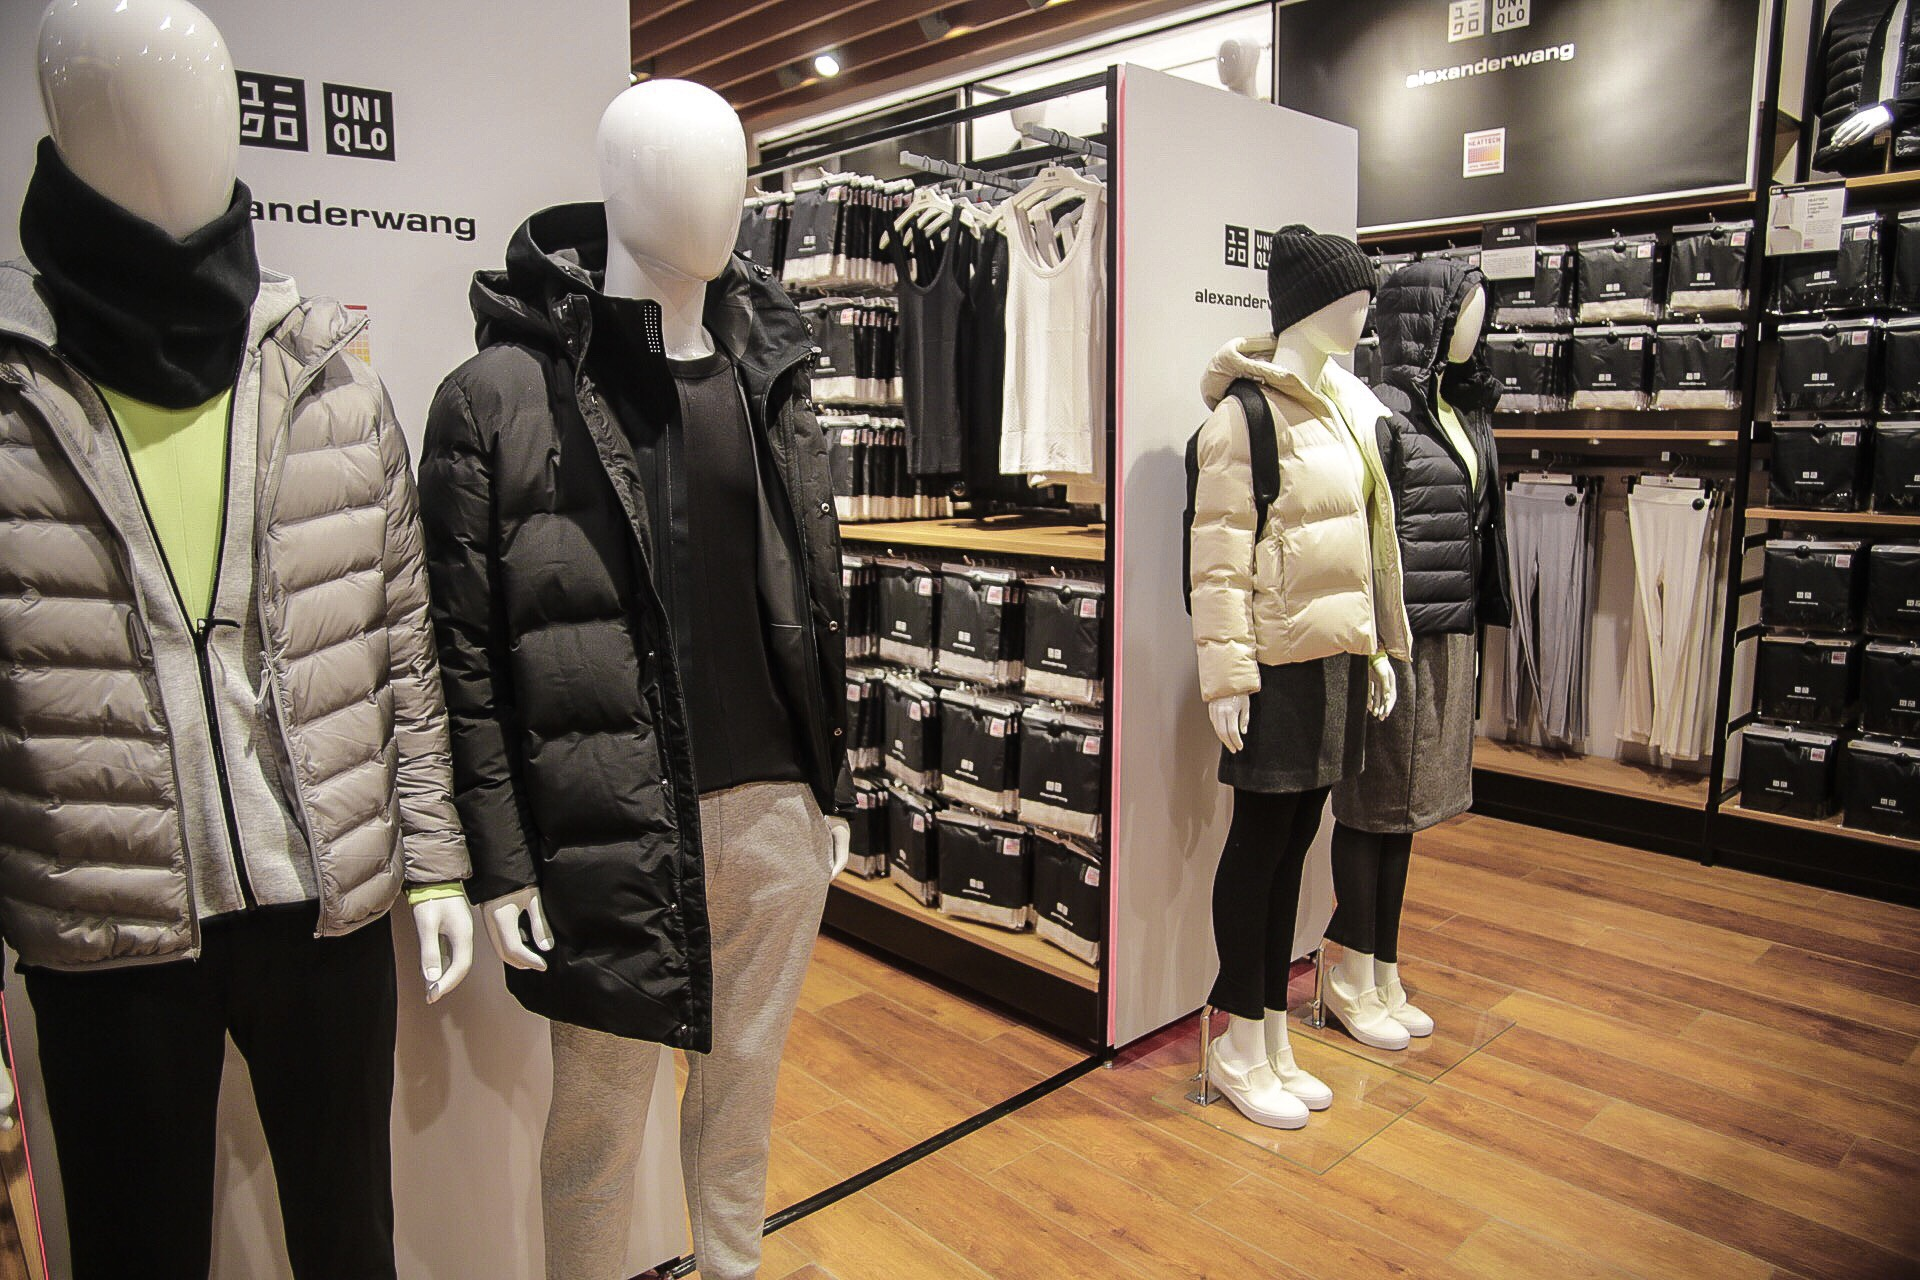 SPENDING EVERYTHING ON ALEXANDER WANG. The Alexander Wang collab on display at the Uniqlo Global Flagship store in Ayala Center, Makati. Photo by Paolo Abad/Rappler